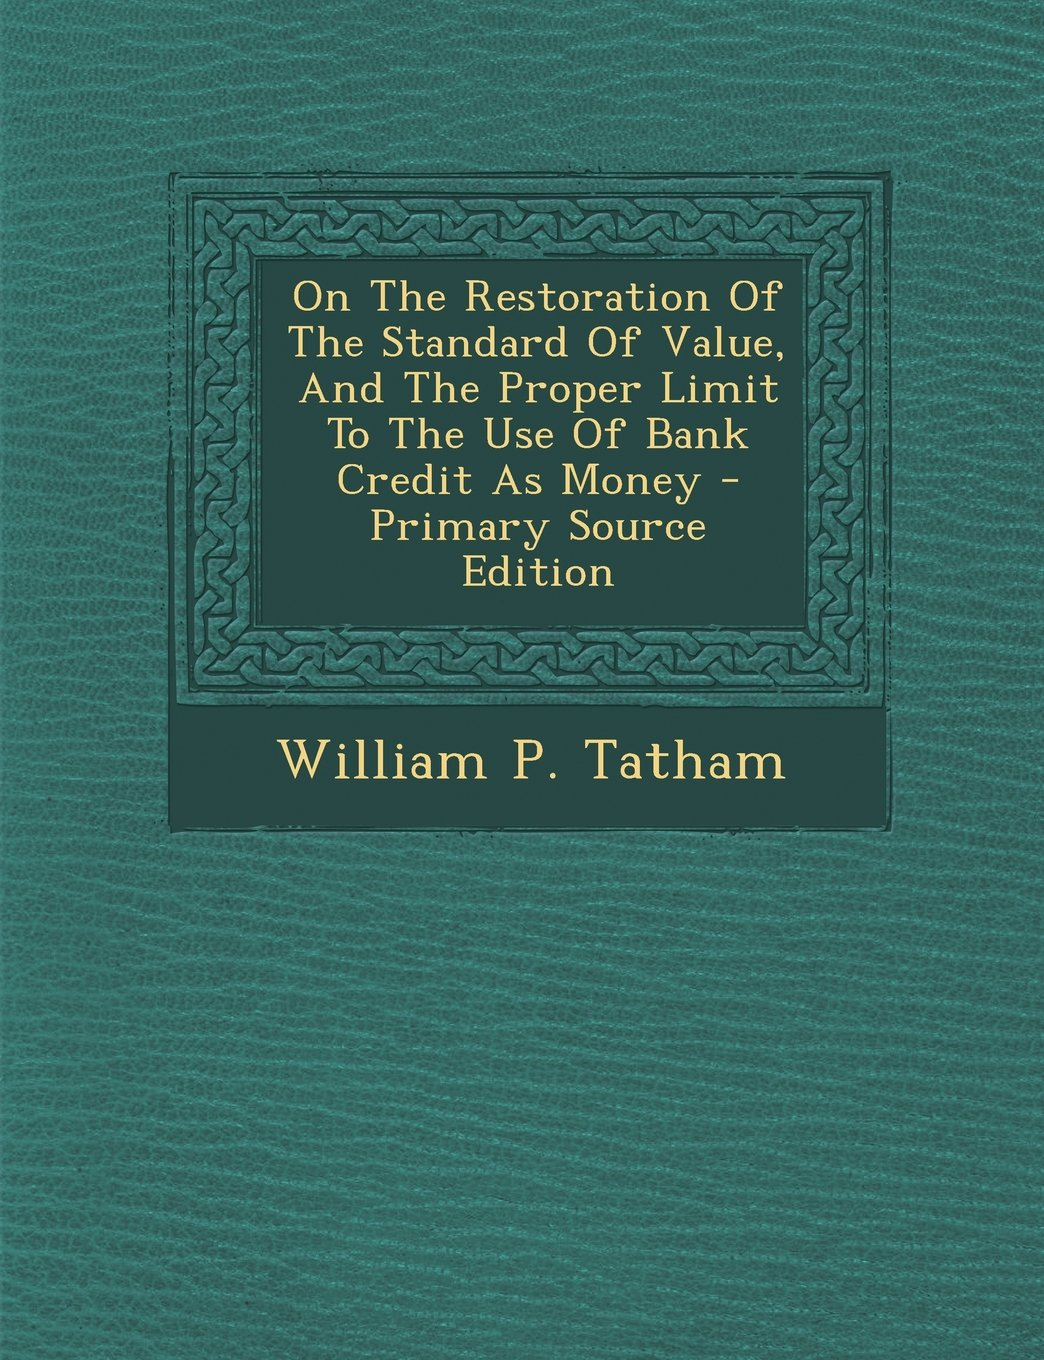 On The Restoration Of The Standard Of Value, And The Proper Limit To The Use Of Bank Credit As Money - Primary Source Edition PDF